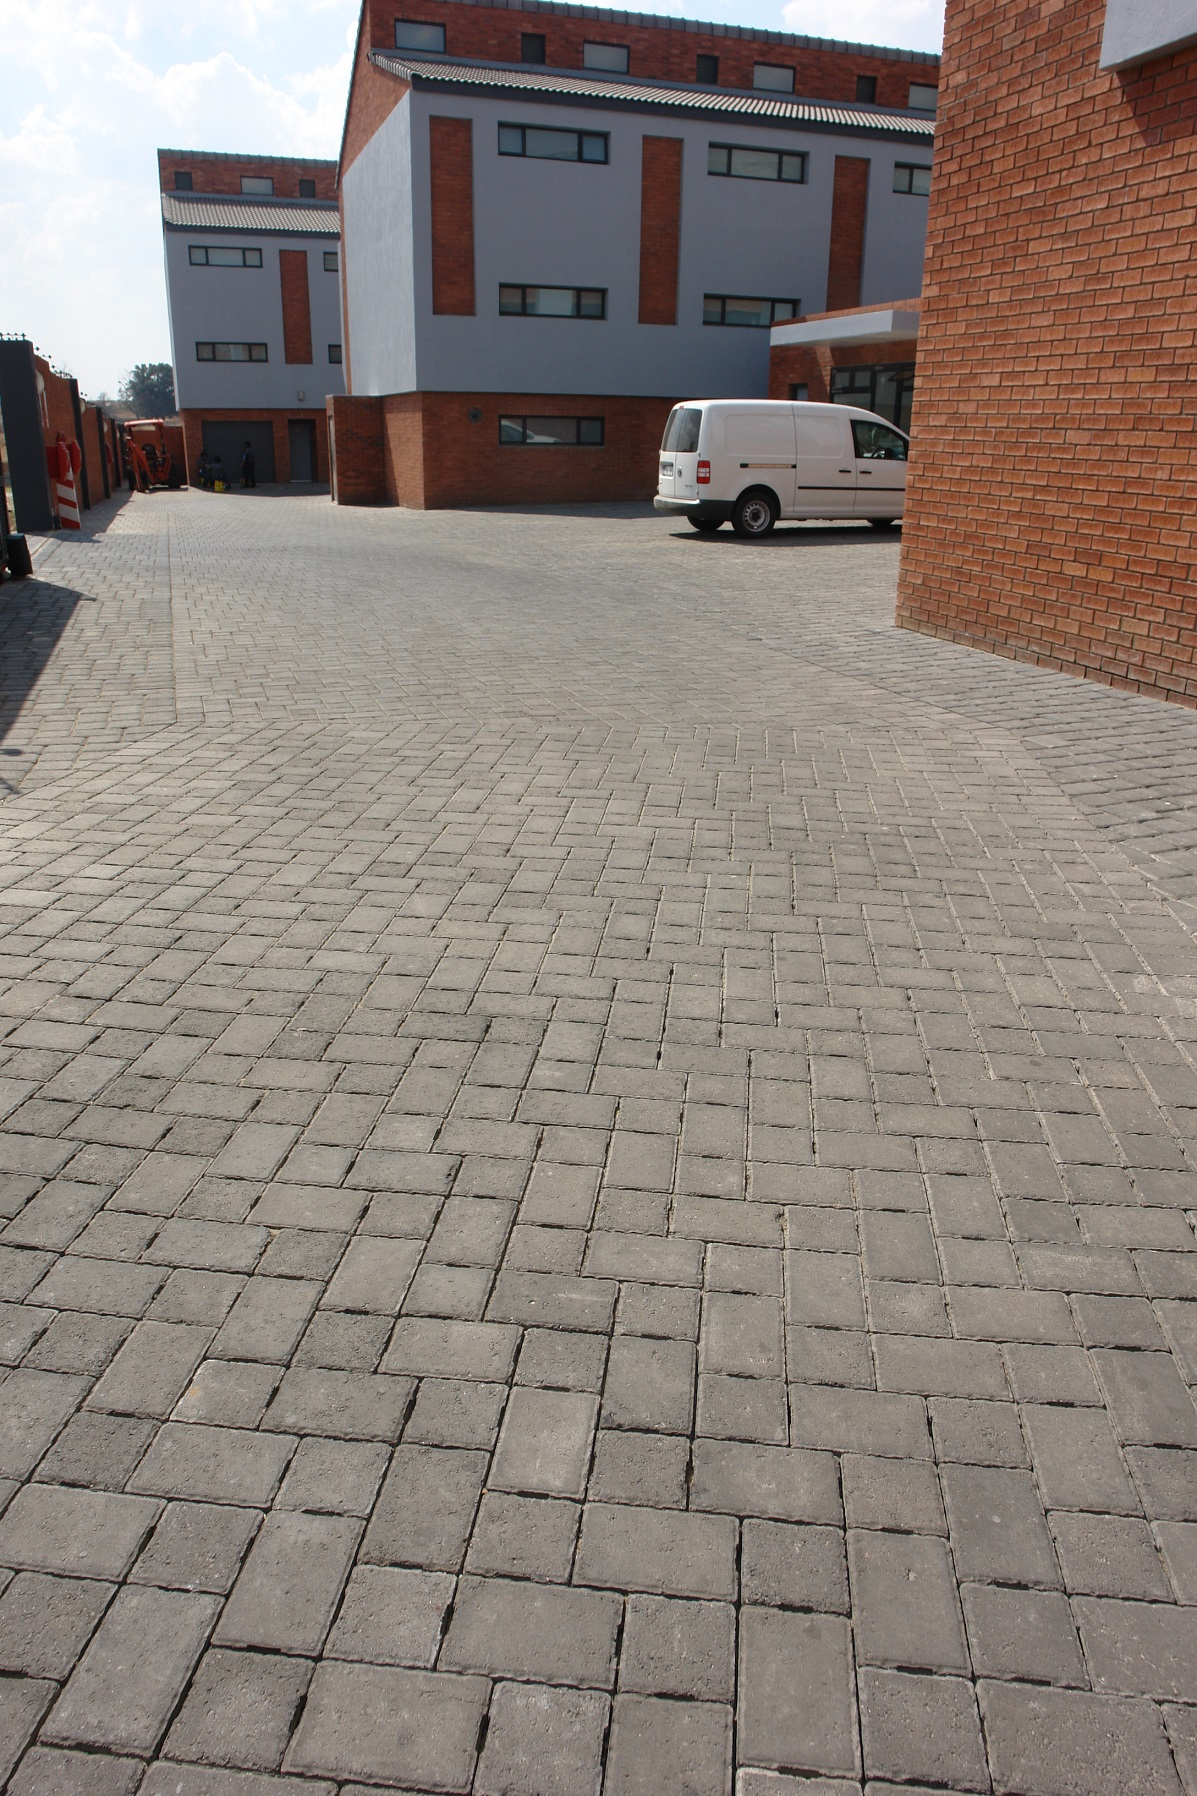 SUCCESSFUL STORMWATER MANAGEMENT WITH PERMEABLE PAVING